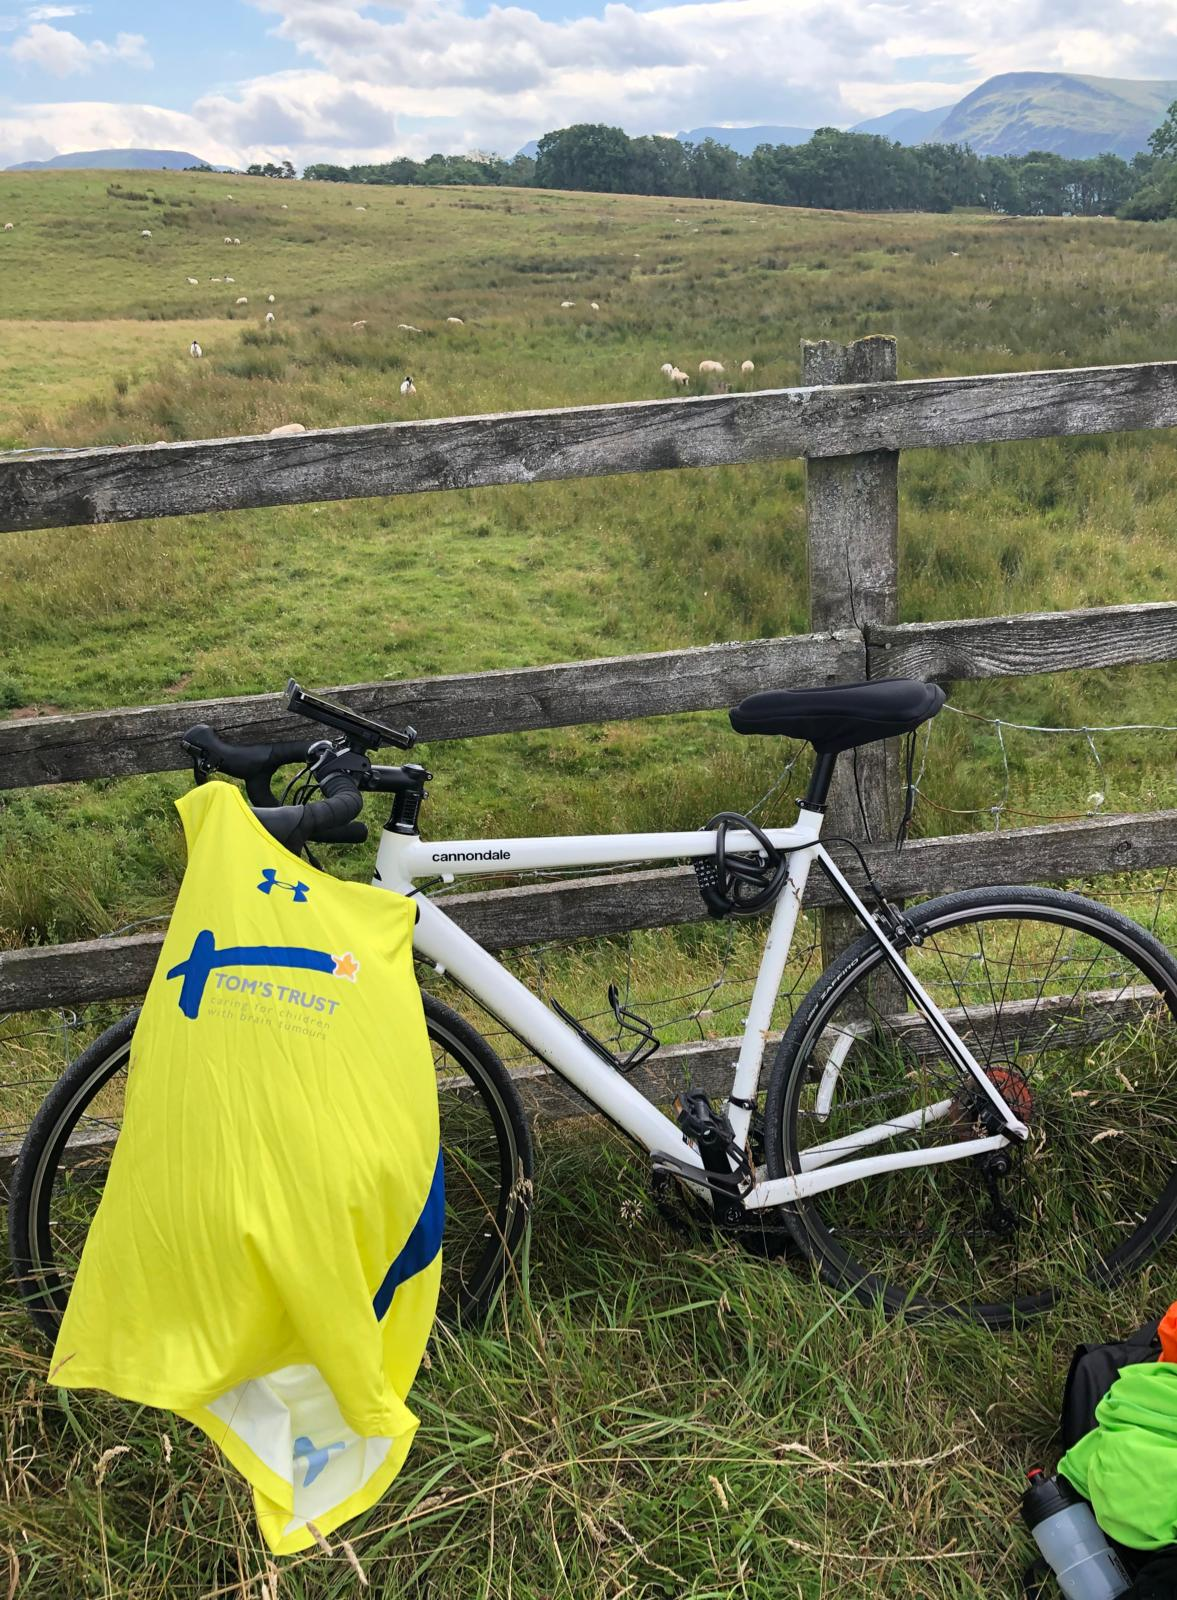 A Tom's Trust vest on a bike in front of a field of sheep.